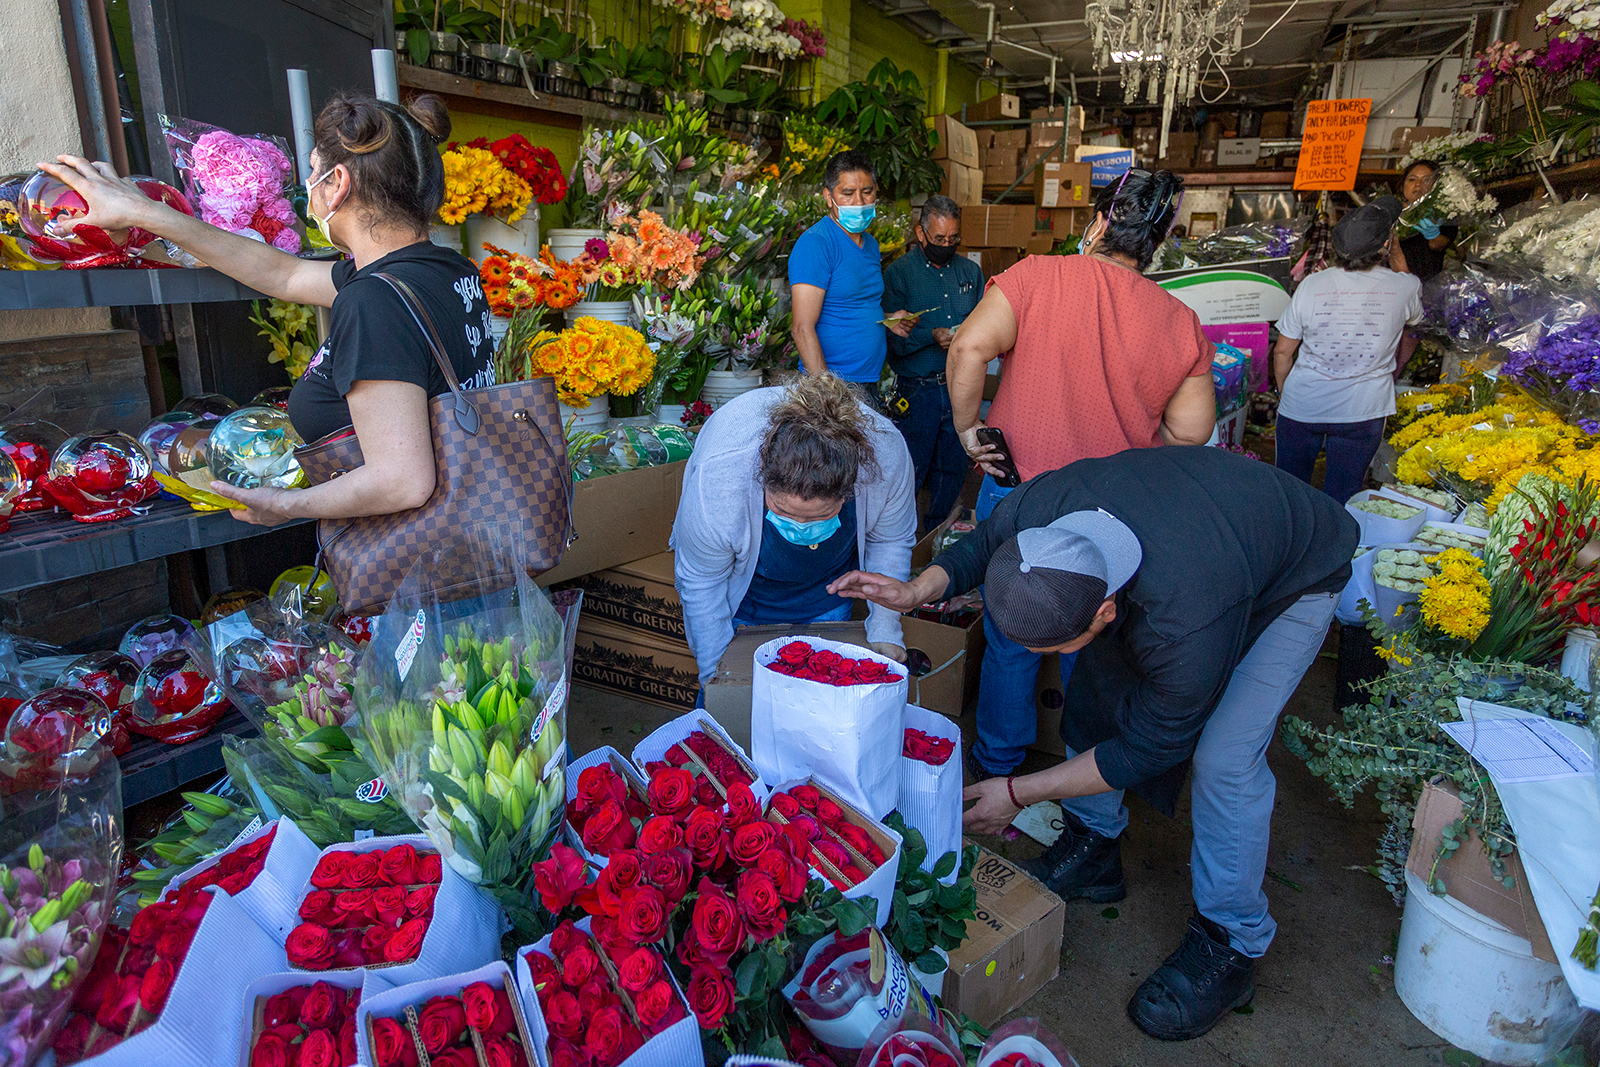 People mingle in close proximity to one another as businesses in the flower district reopen on May 8, 2020 in Los Angeles, California.